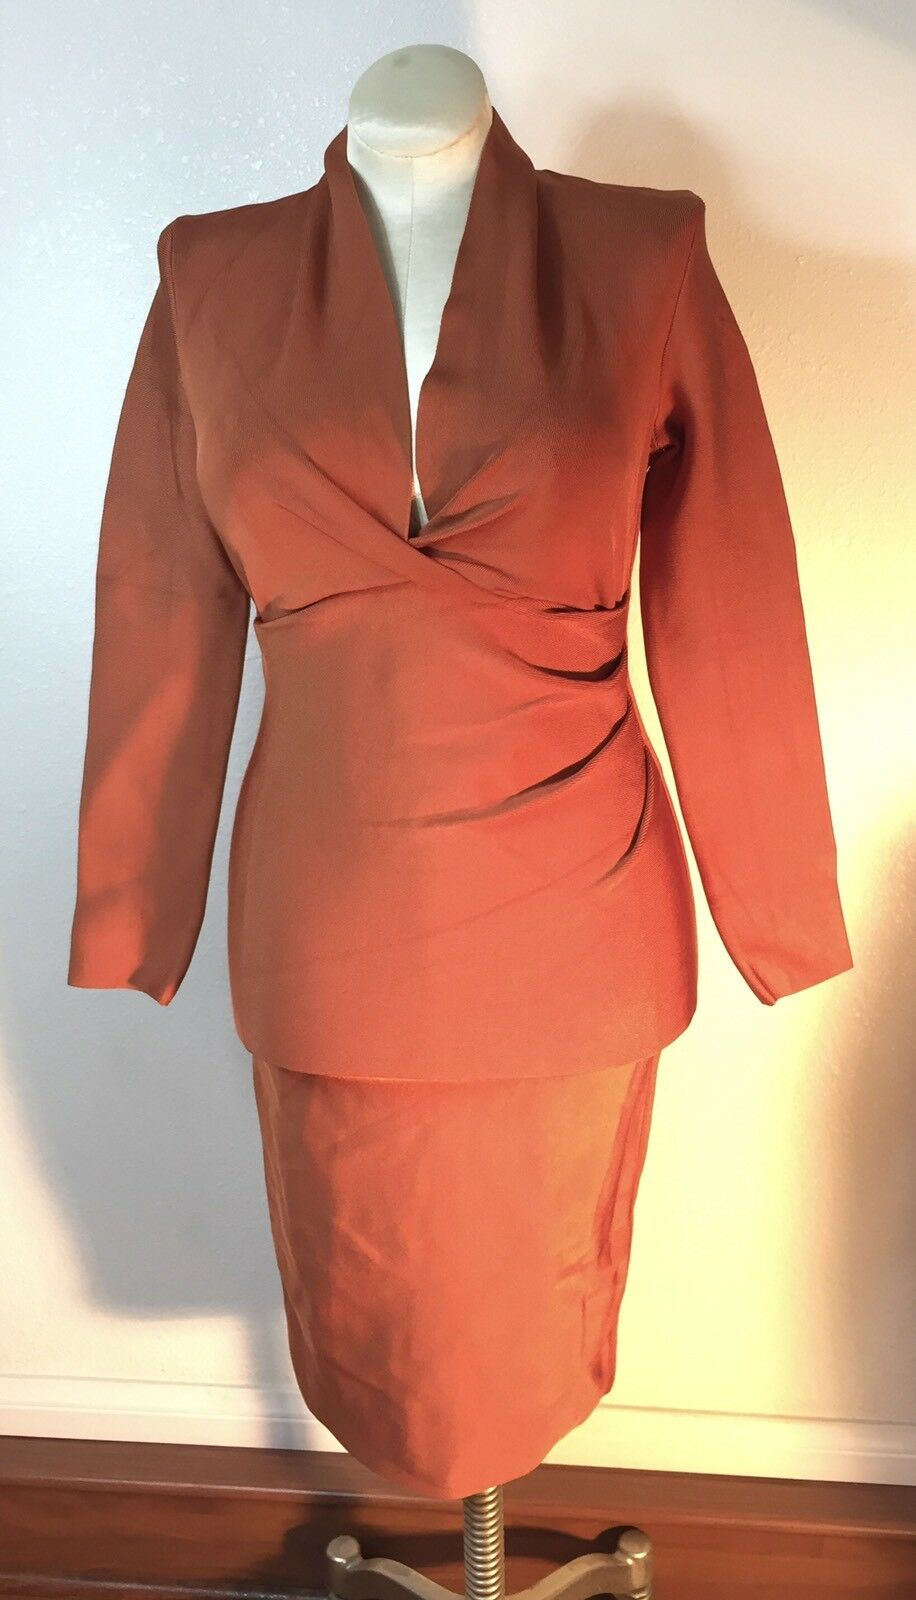 Whoinshop draped deep plunged long sleeve party dress women's size XL brown NWOT